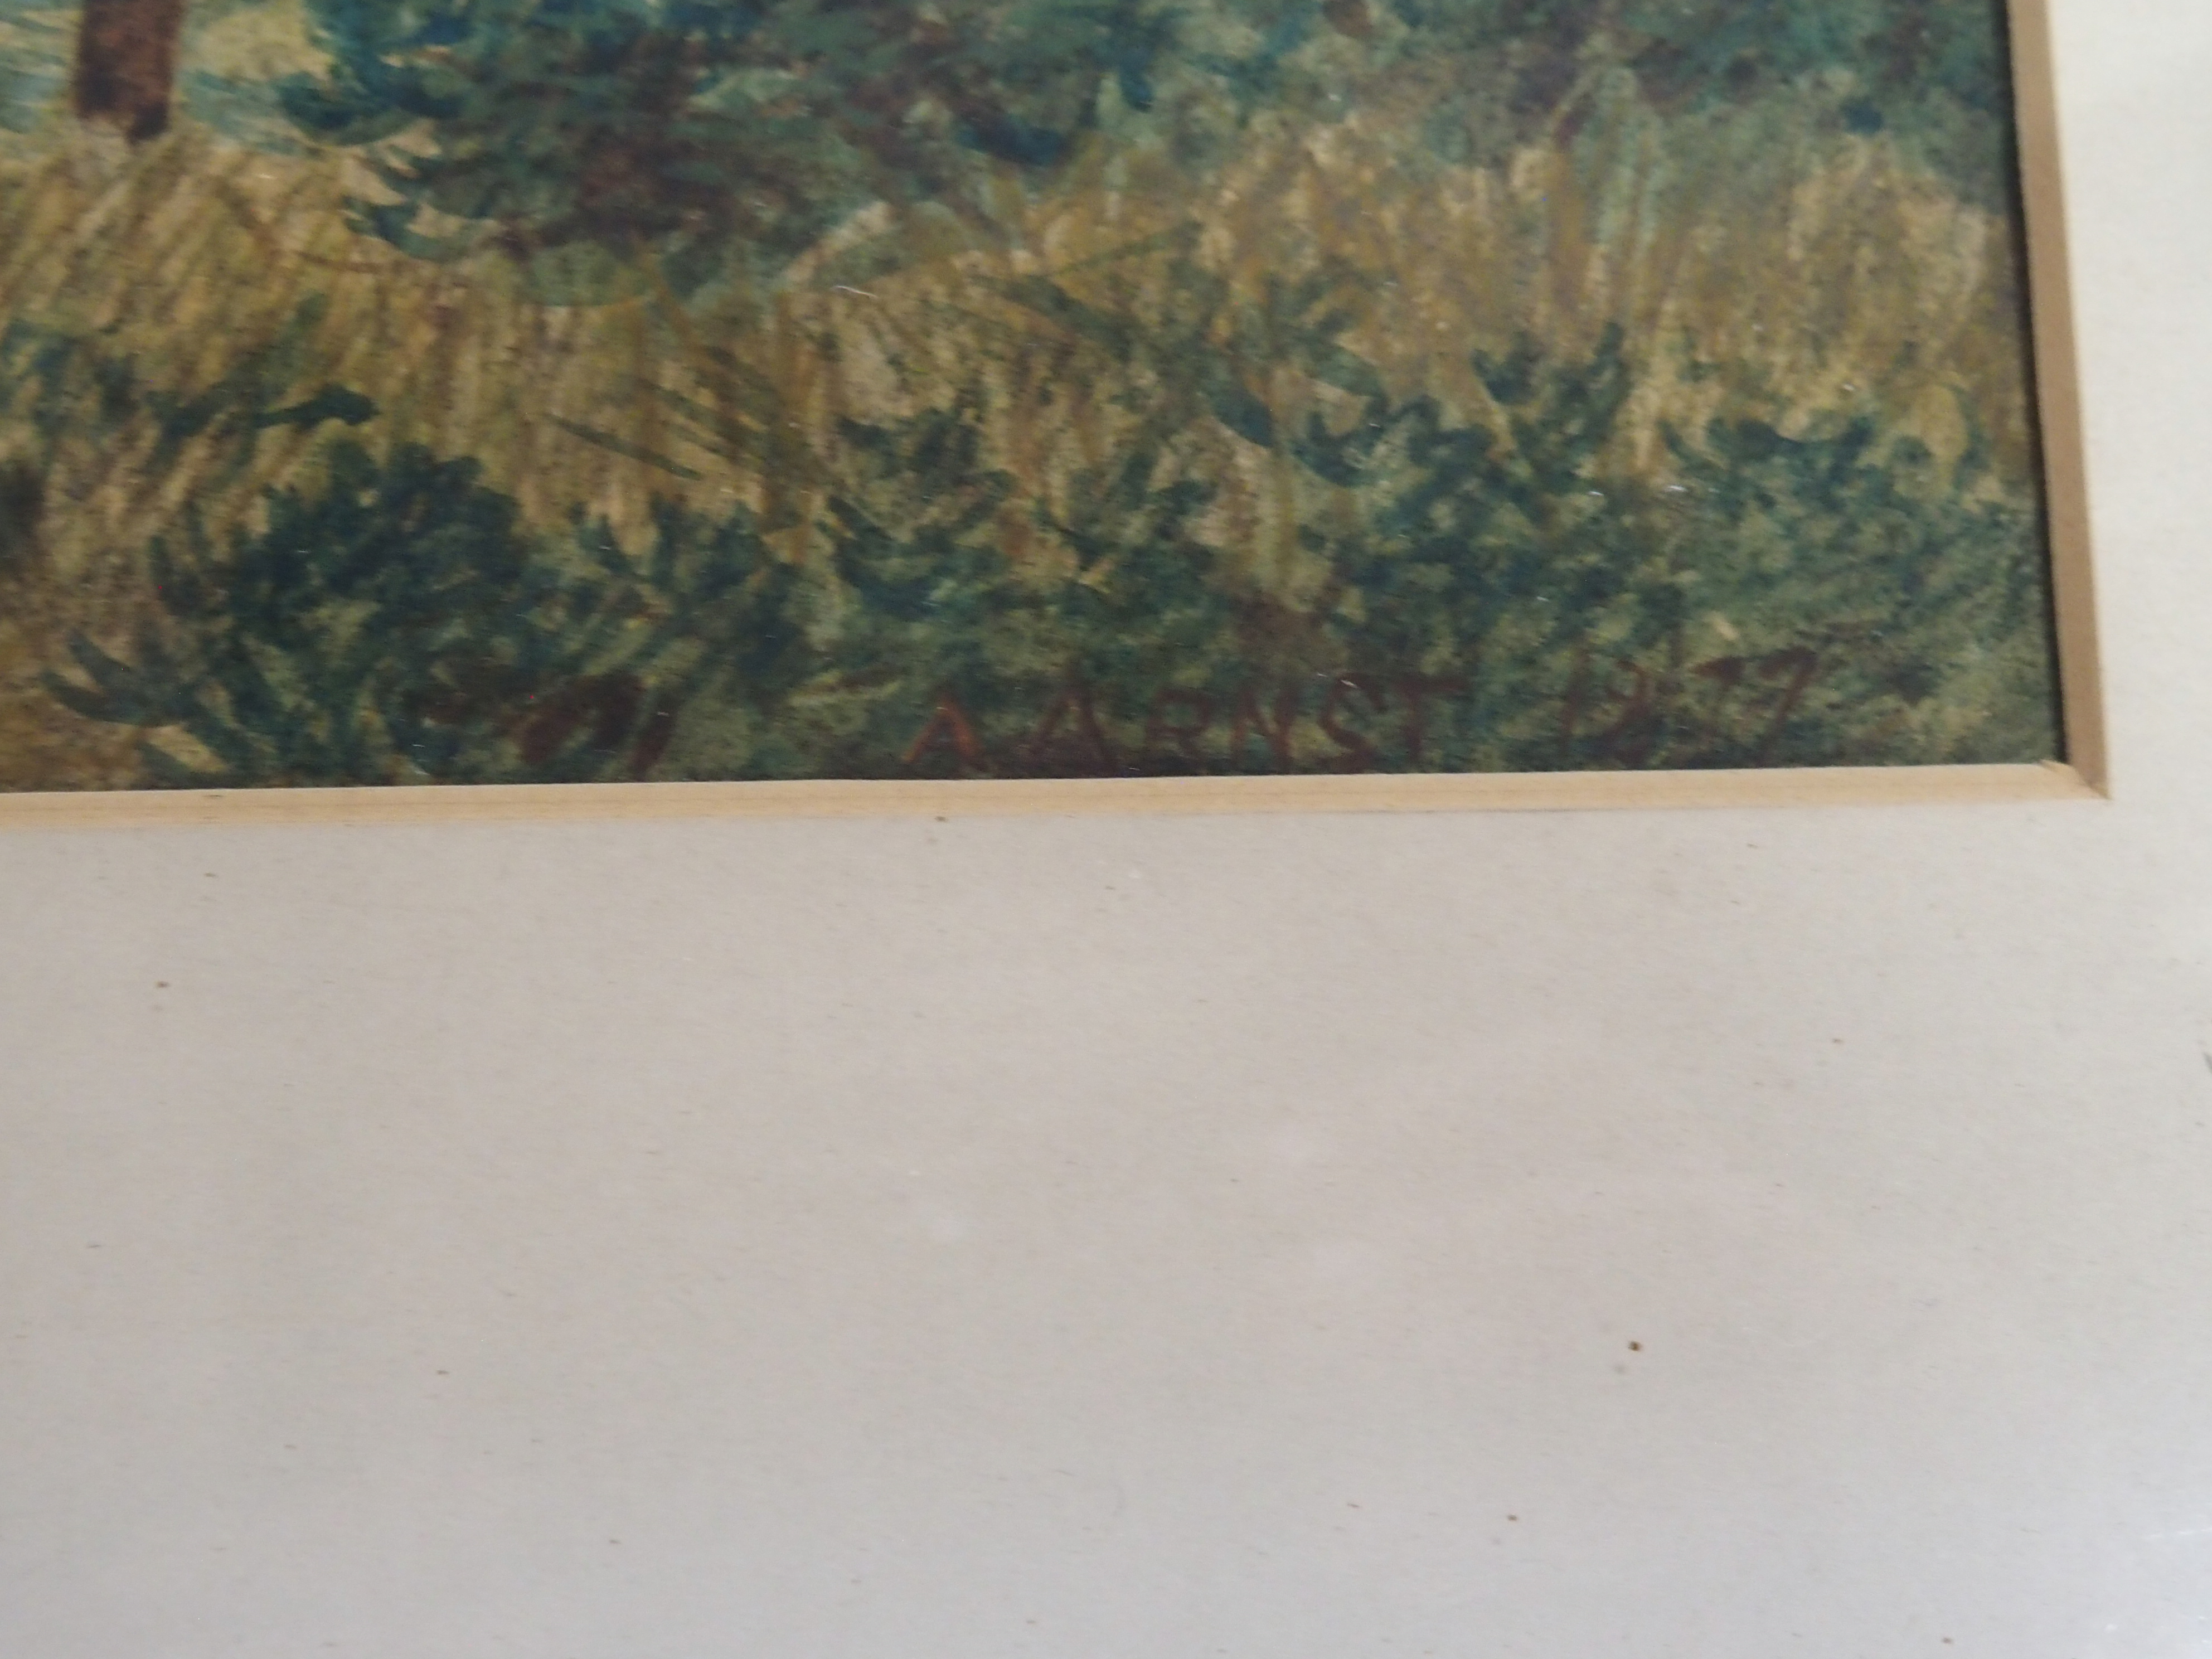 A ARNST (GERMAN 19TH CENTURY) PANORAMIC VIEW OF EDINBURGH Watercolour on paper laid on canvas, - Image 3 of 4